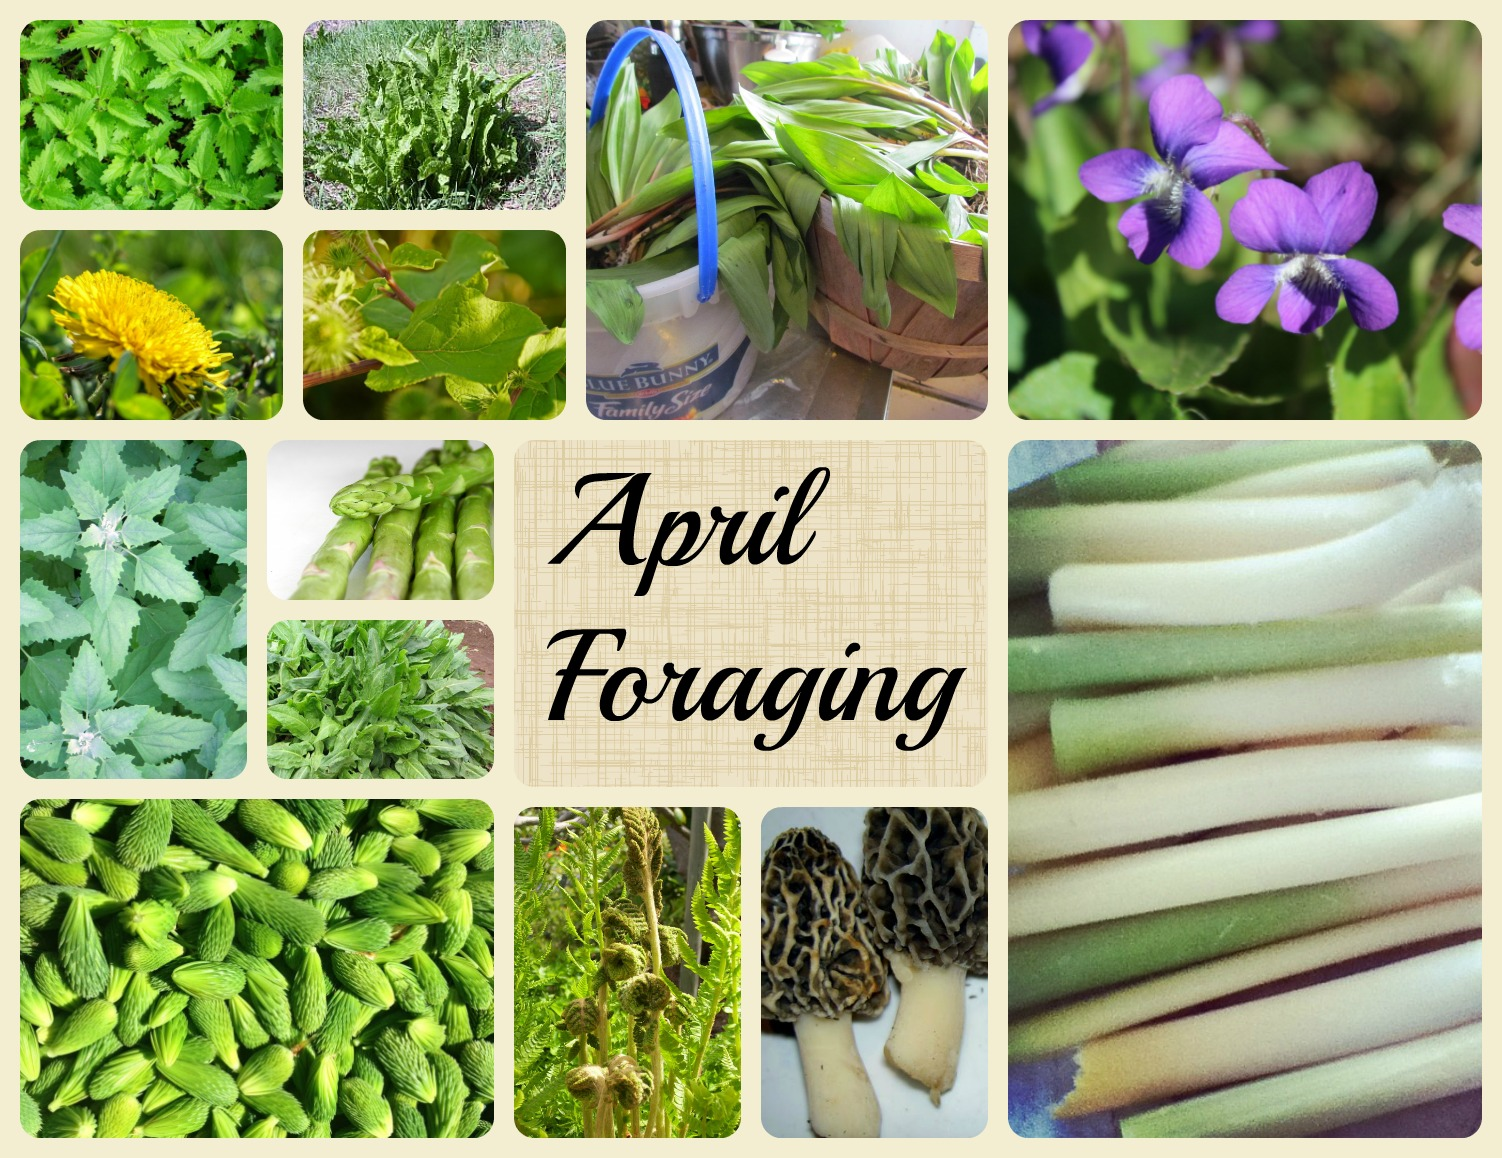 30 Wild foods to forage in April